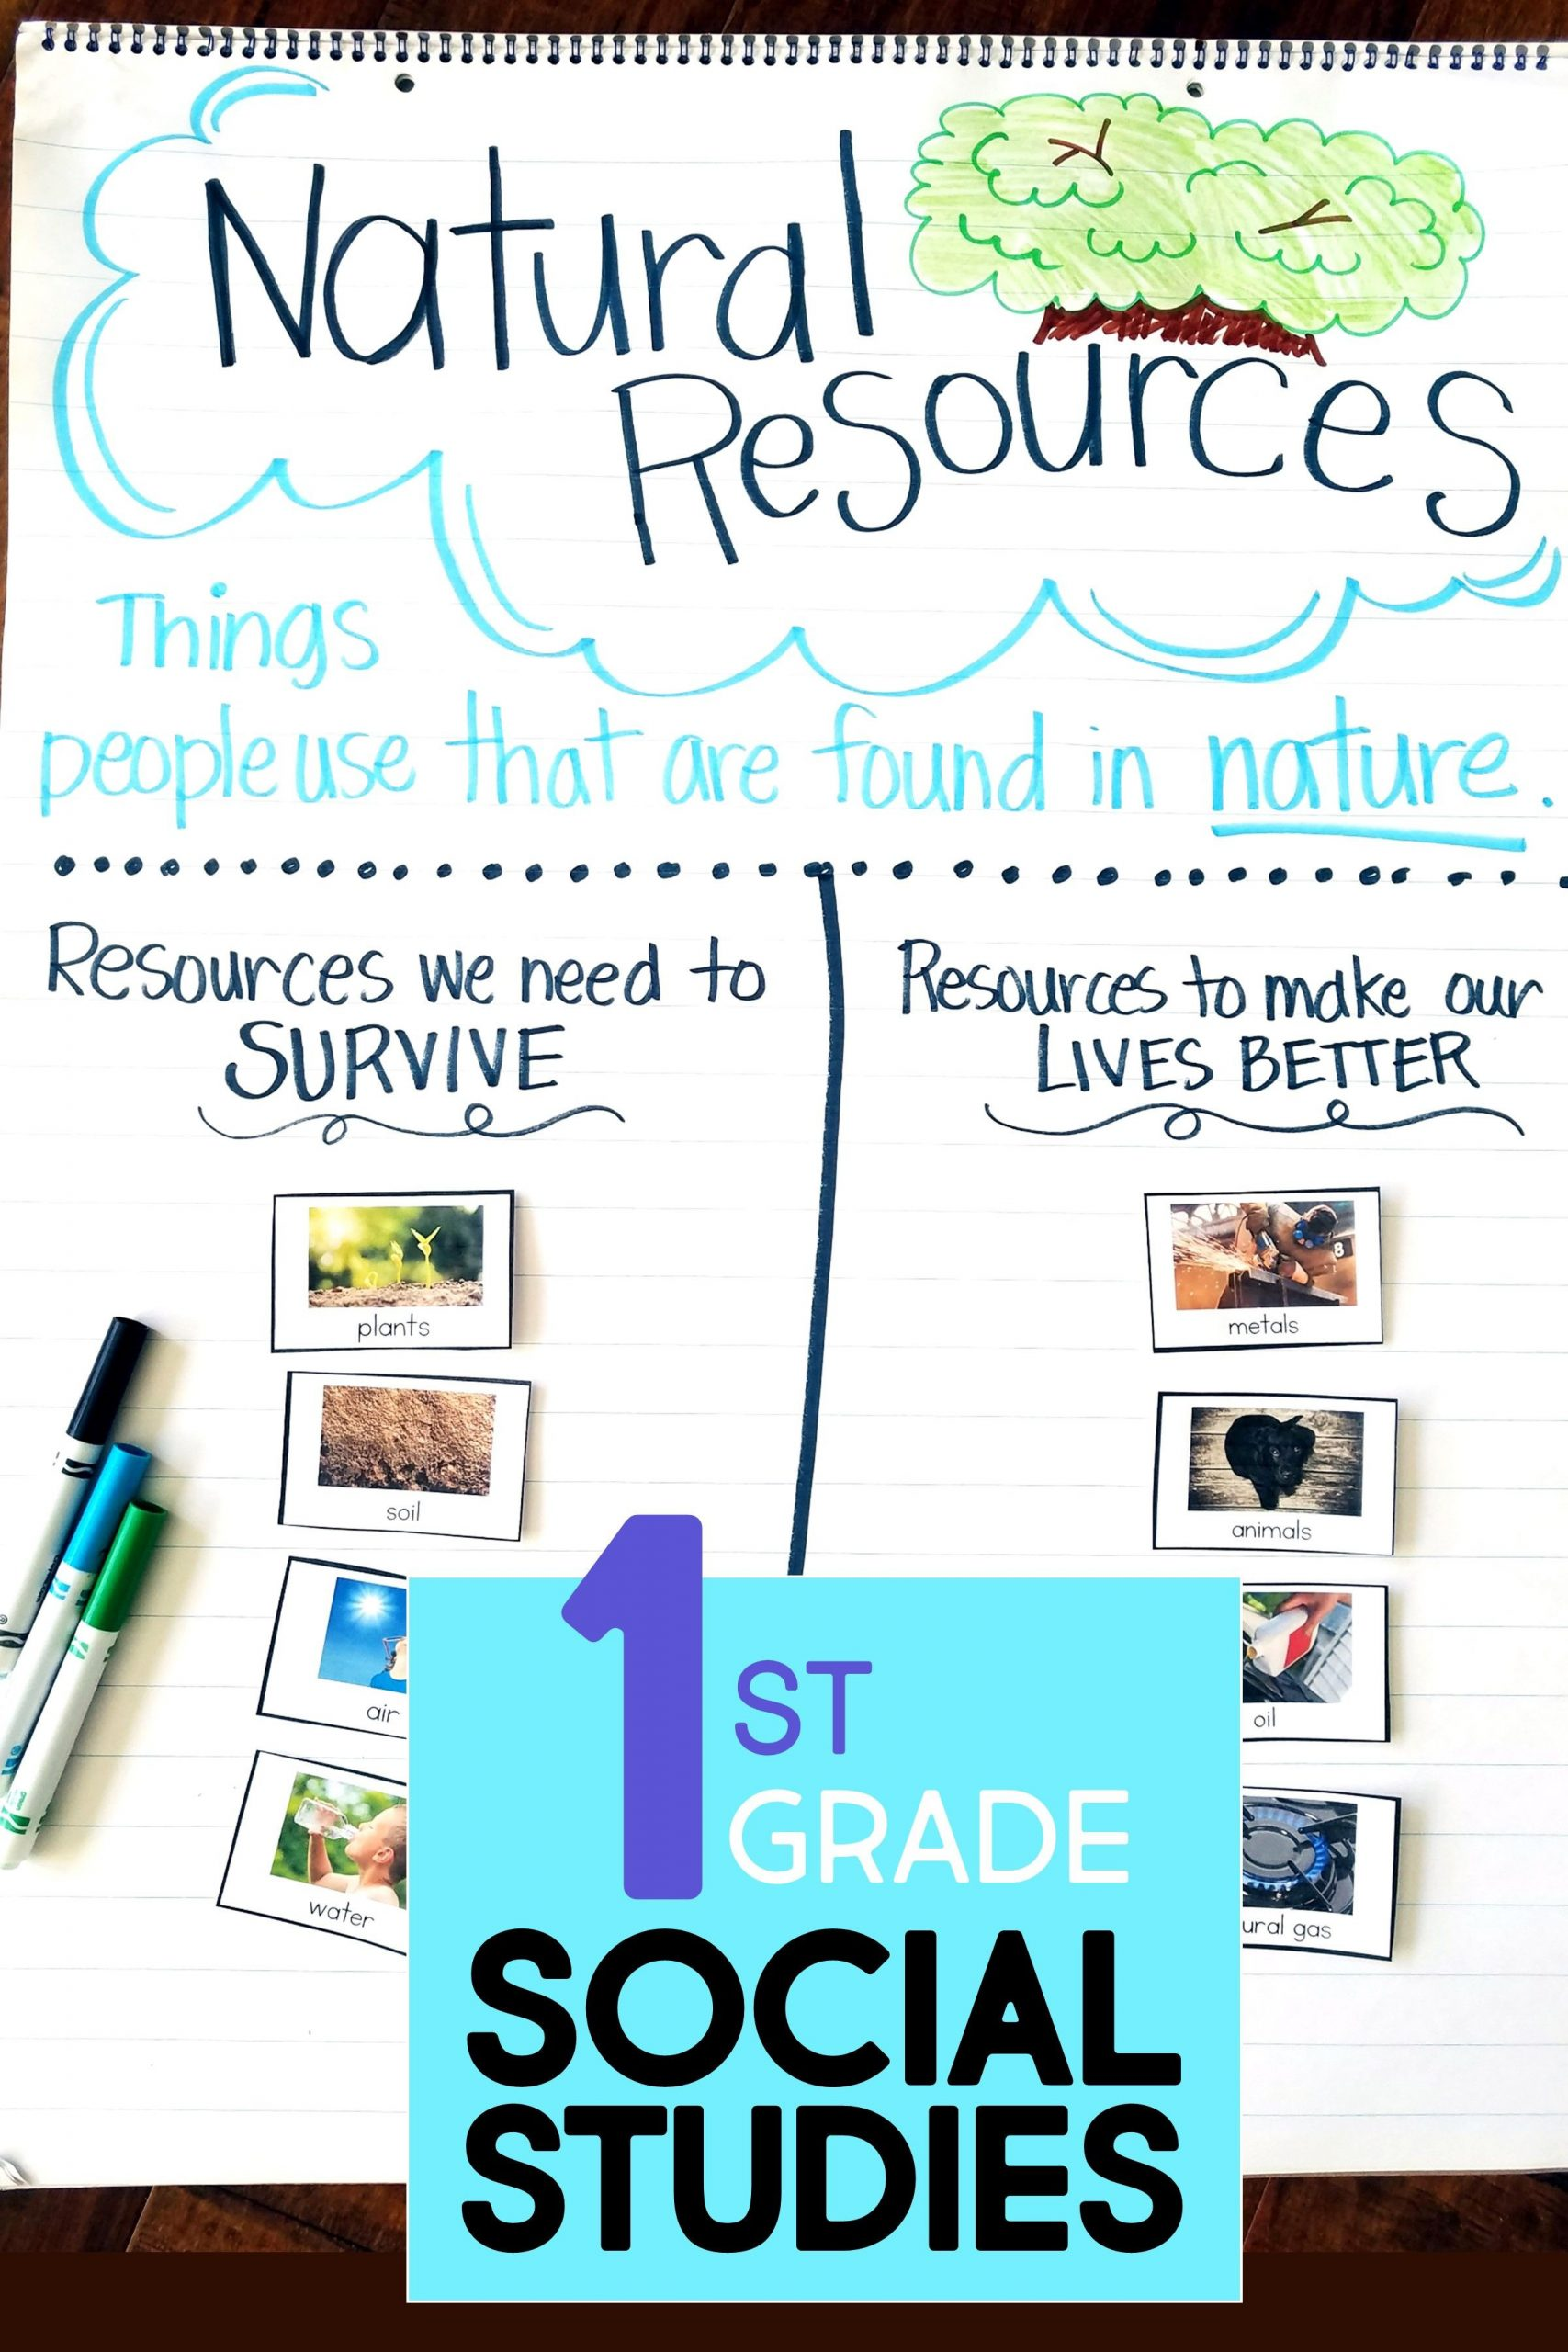 Natural Resources Worksheets 1st Grade Natural Resources for Kids